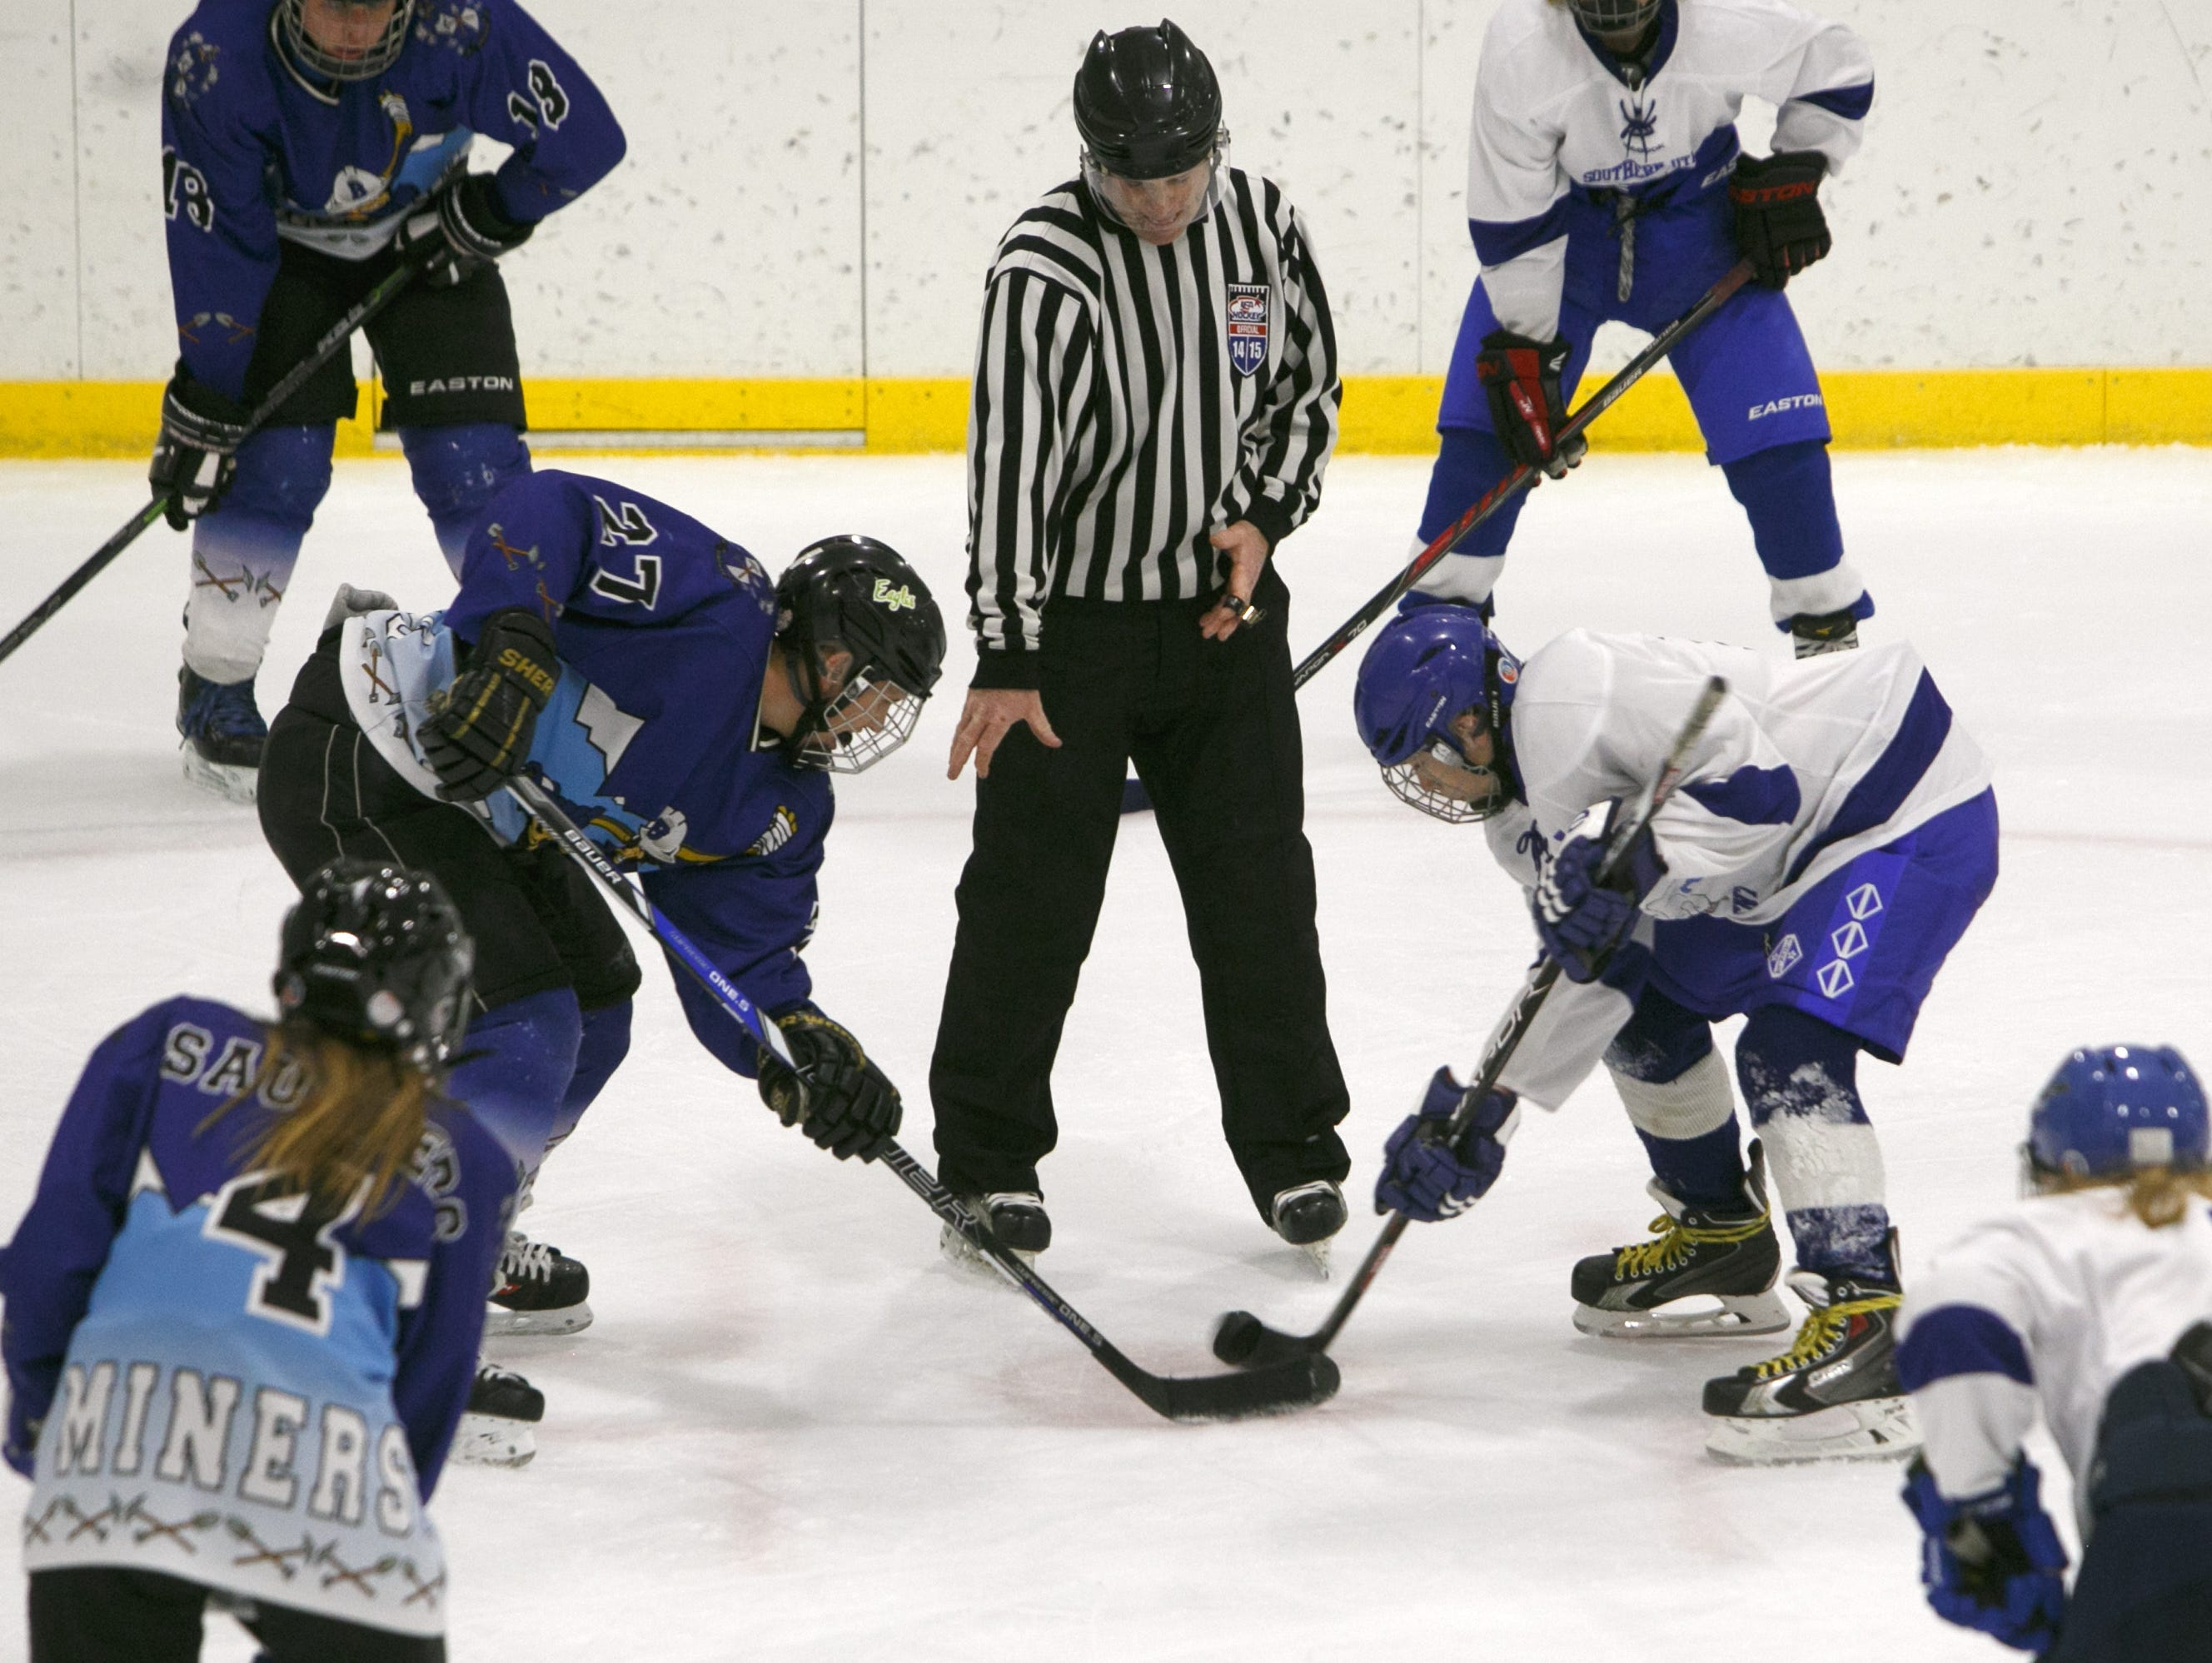 Southern Utah Independent players line up for a face-off with Bingham High School players during their game at the Peaks Ice Arena in Provo, Saturday, Nov. 14, 2015.